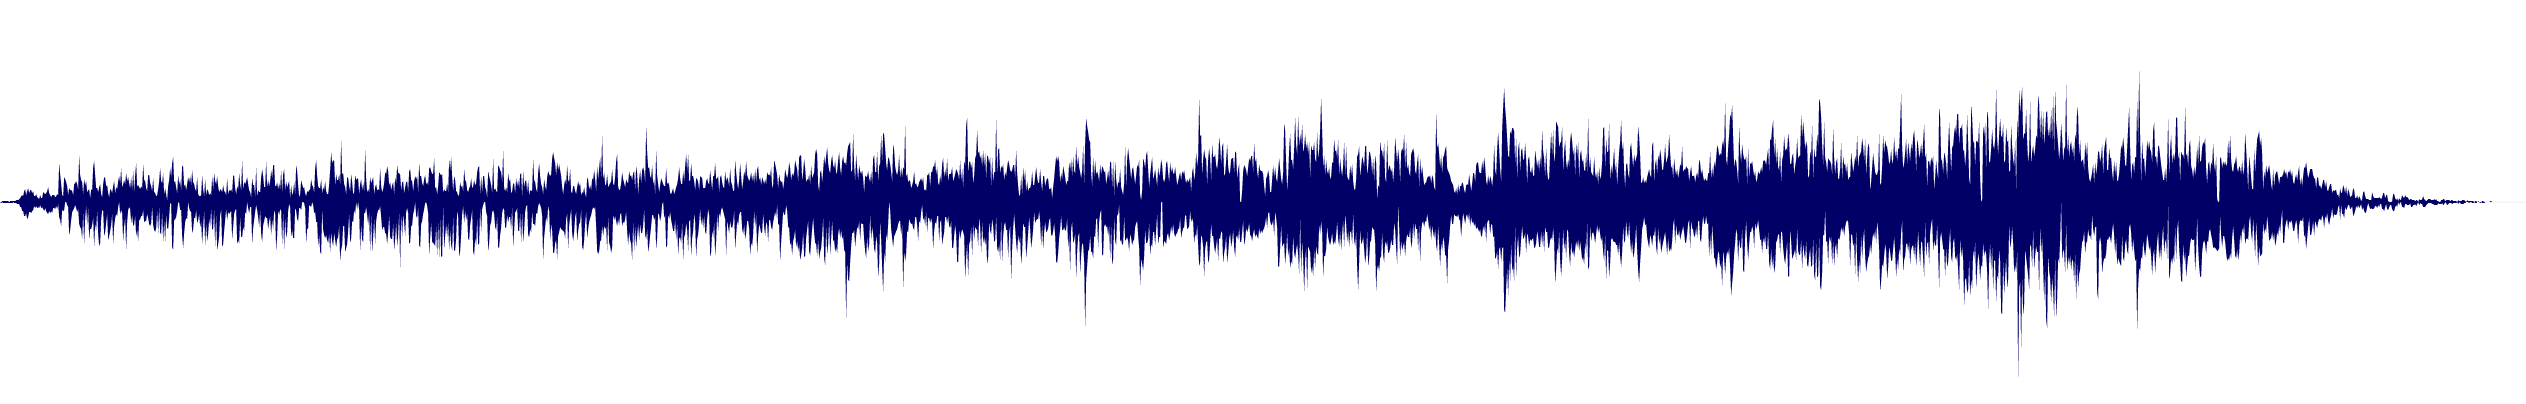 waveform of track #104874